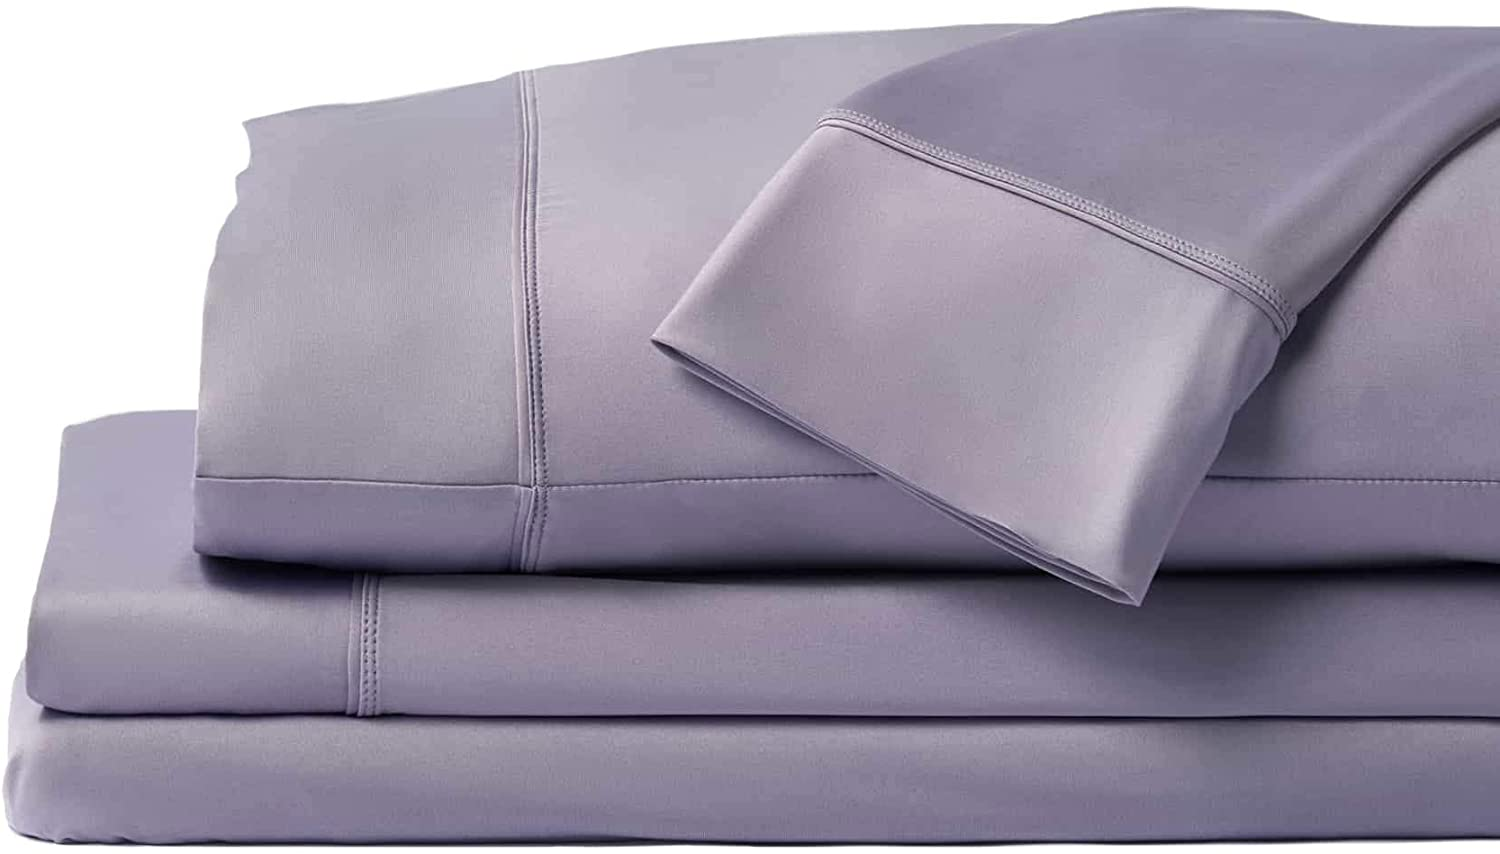 SHEEX - Spring new work Original Performance Sheet 2 with Set Pillowcases New products world's highest quality popular Ultra